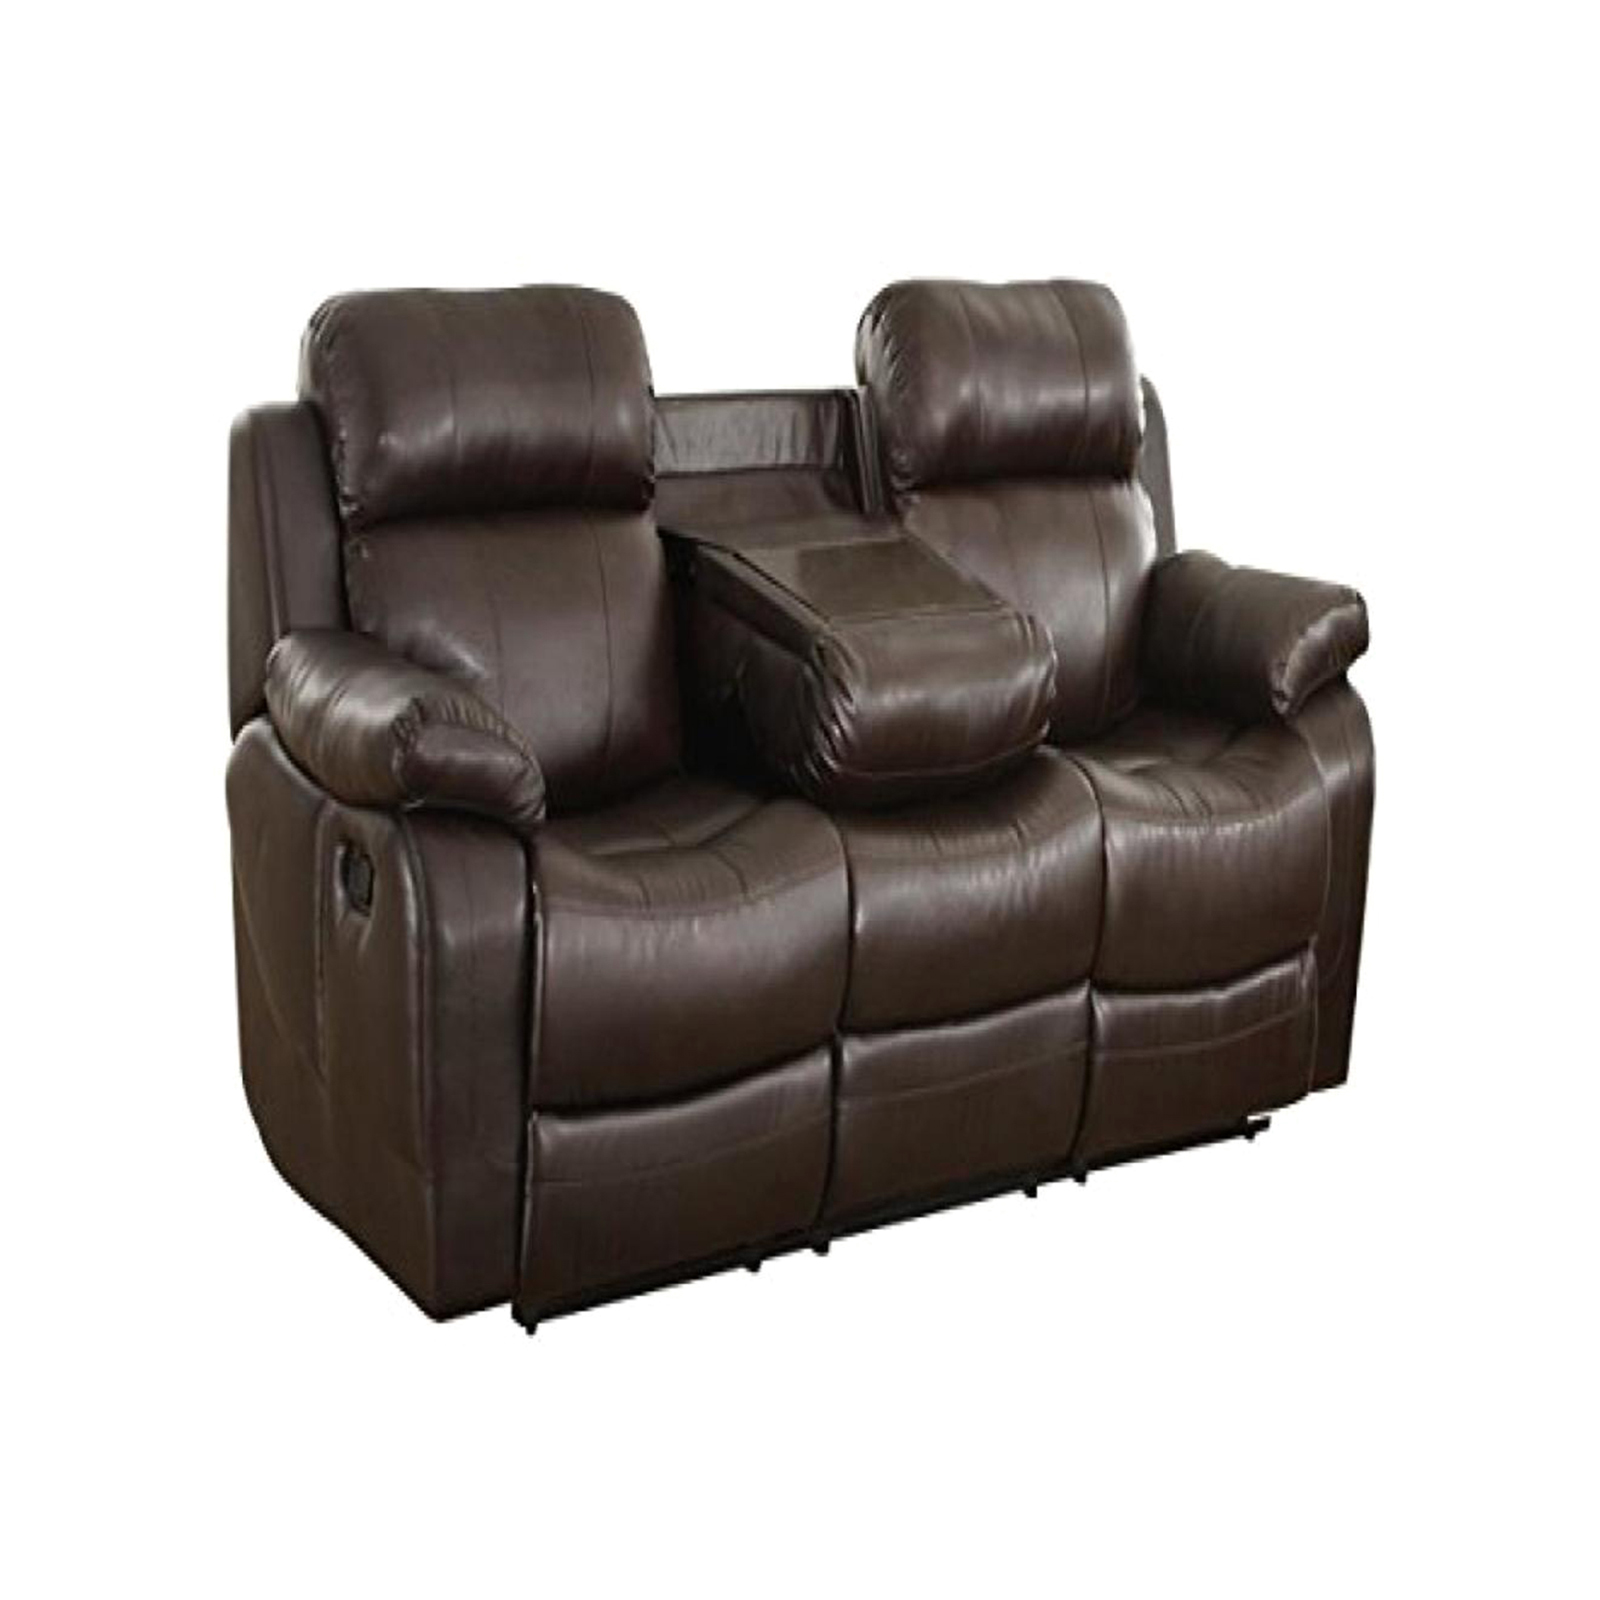 Homelegance Marille Double Reclining Sofa Sears Marketplace